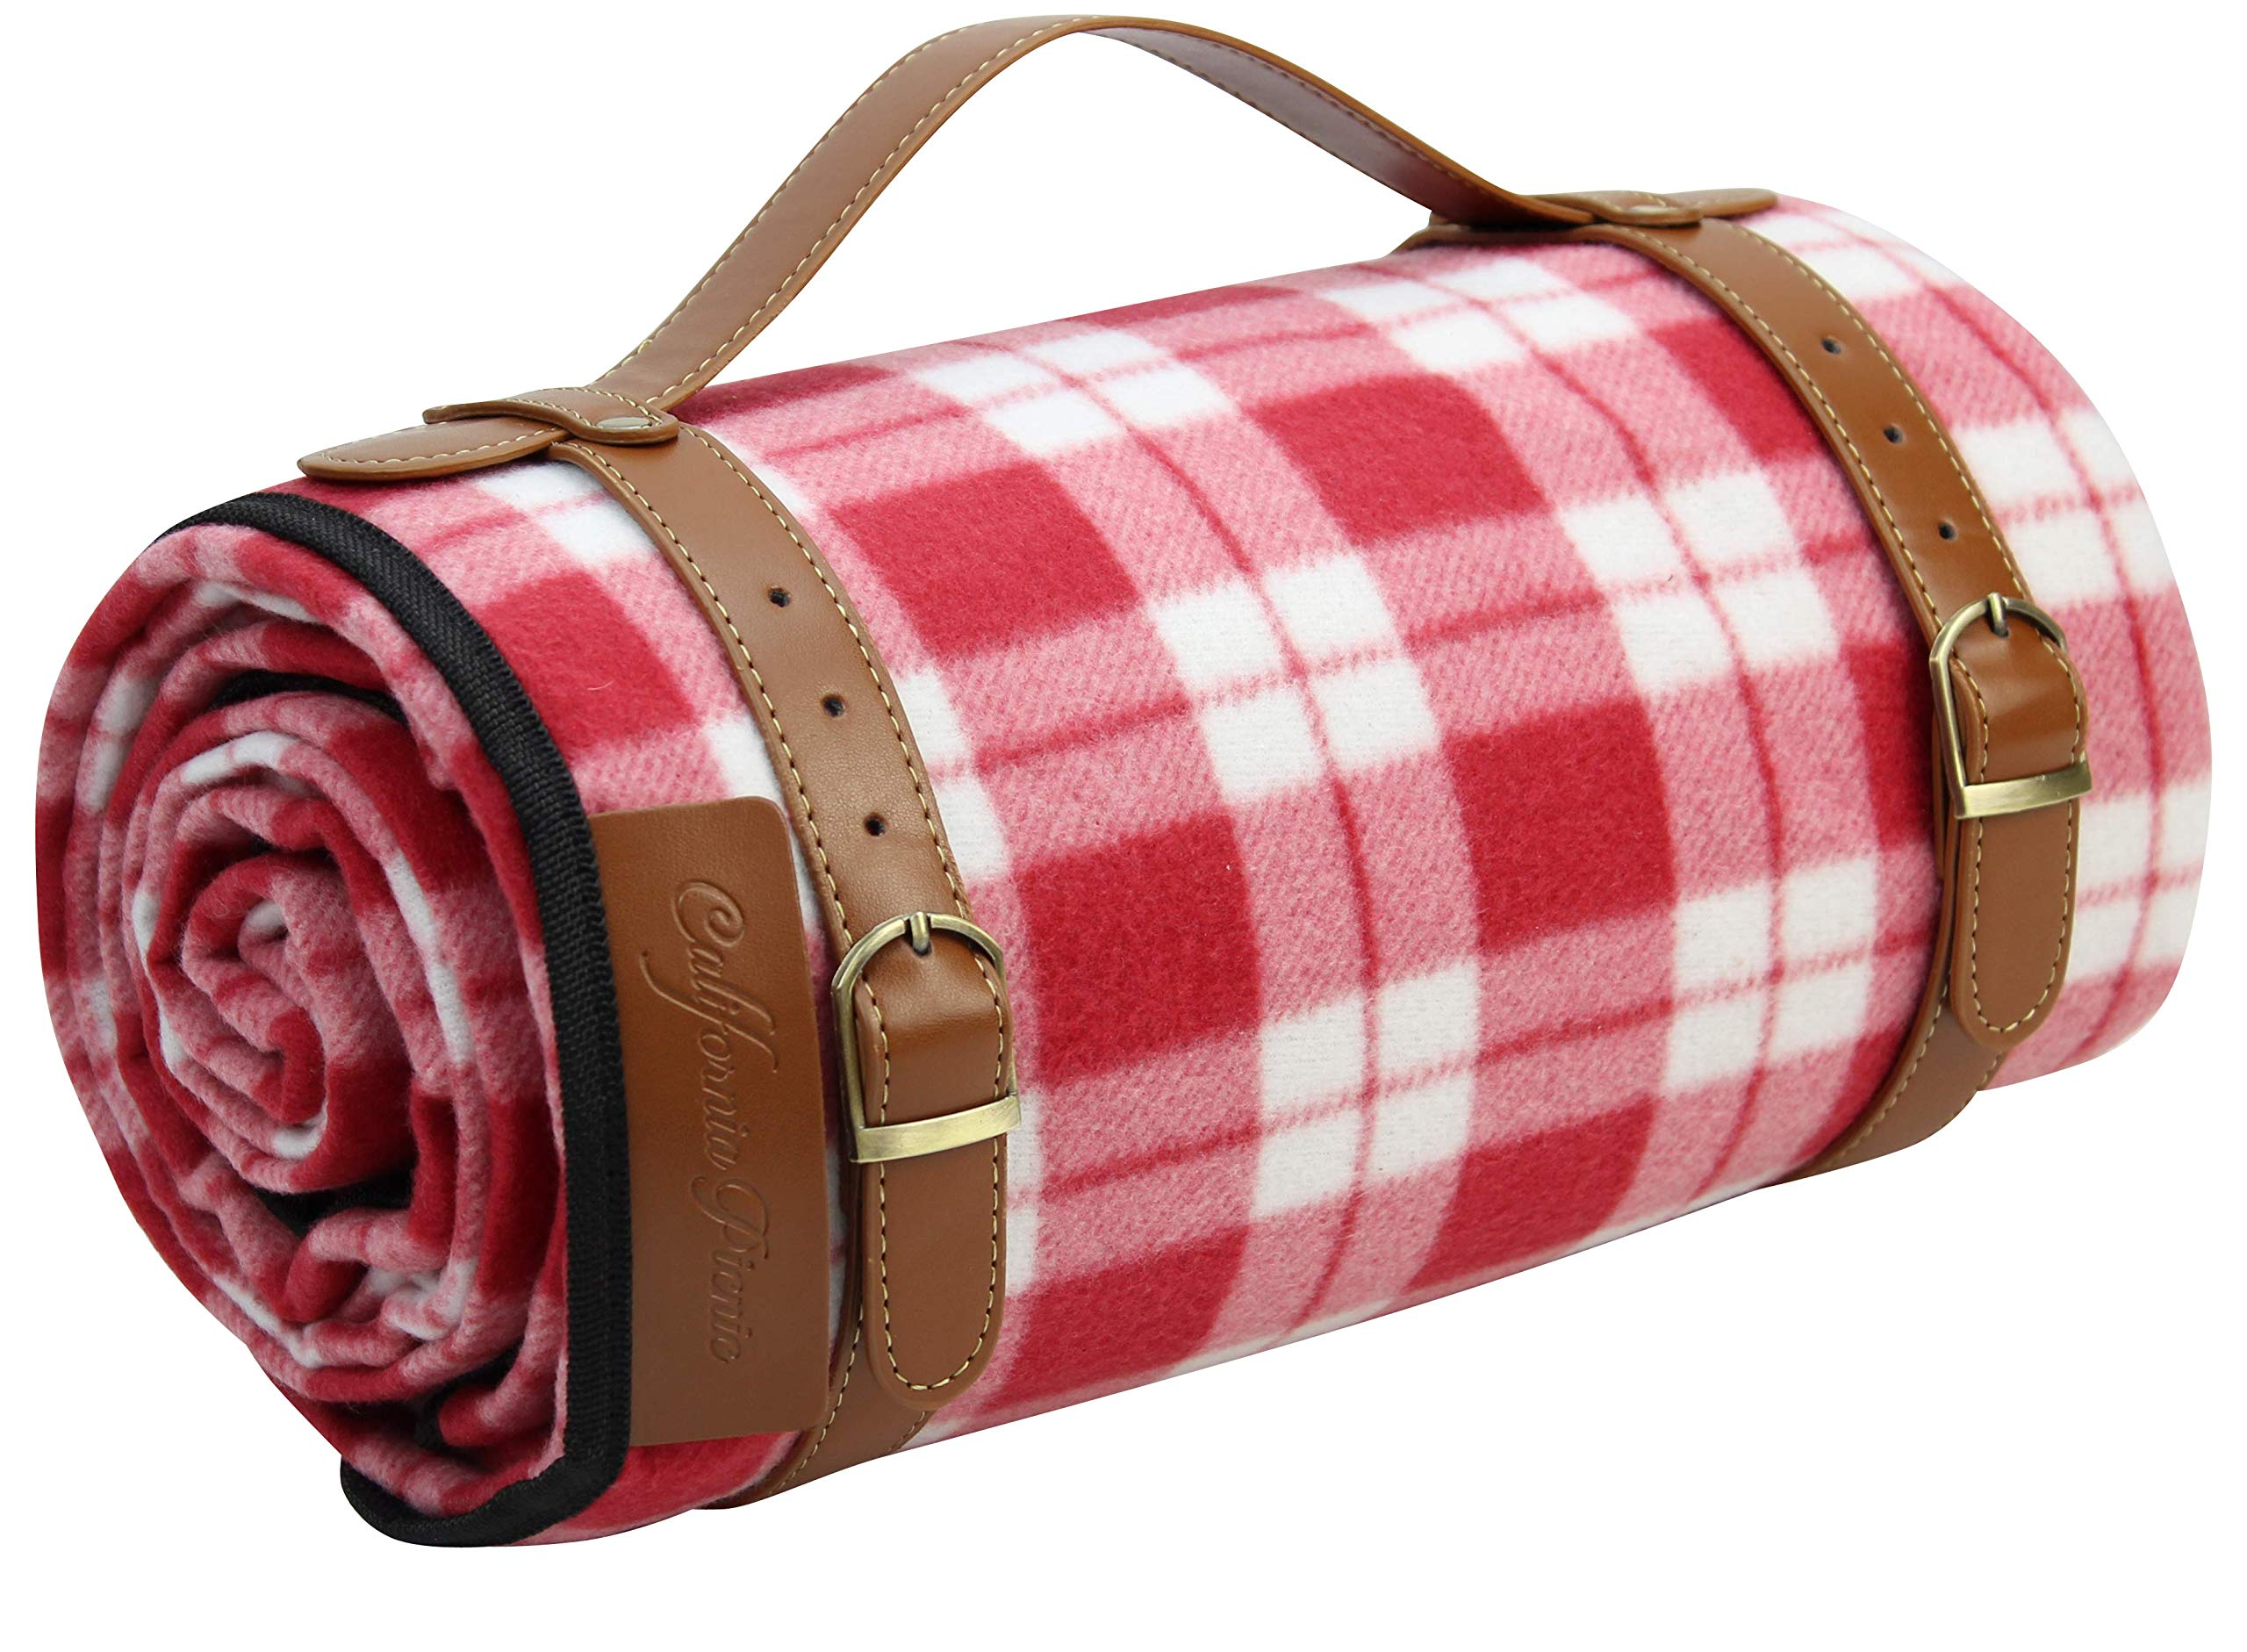 Picnic Blanket Waterproof Extra Large   Beach Blanket Sand Proof Oversized Waterproof   Great Festival Blanket and Picnic Mat   Water Resistant Heavy Duty Wet Lawn Blanket Backing for Outdoor Picnics